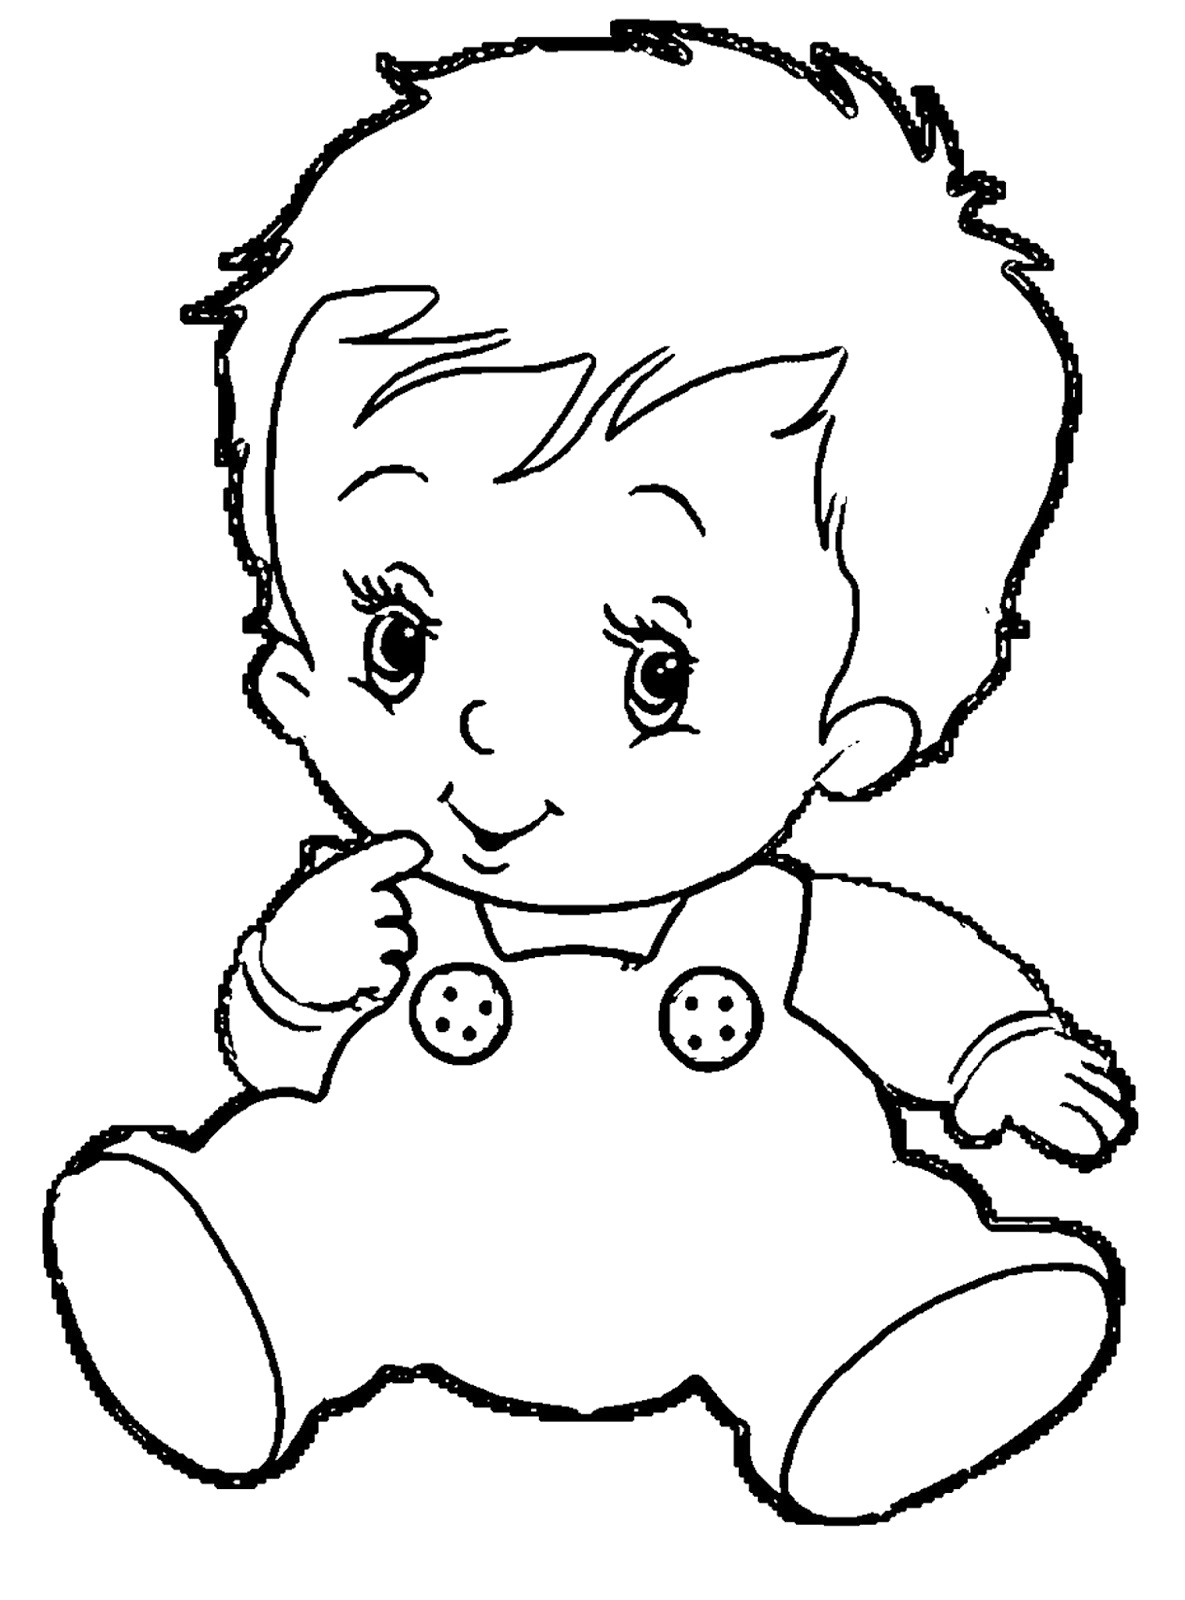 Clipart baby black and white jpg transparent stock Black and white baby clipart 2 » Clipart Station jpg transparent stock